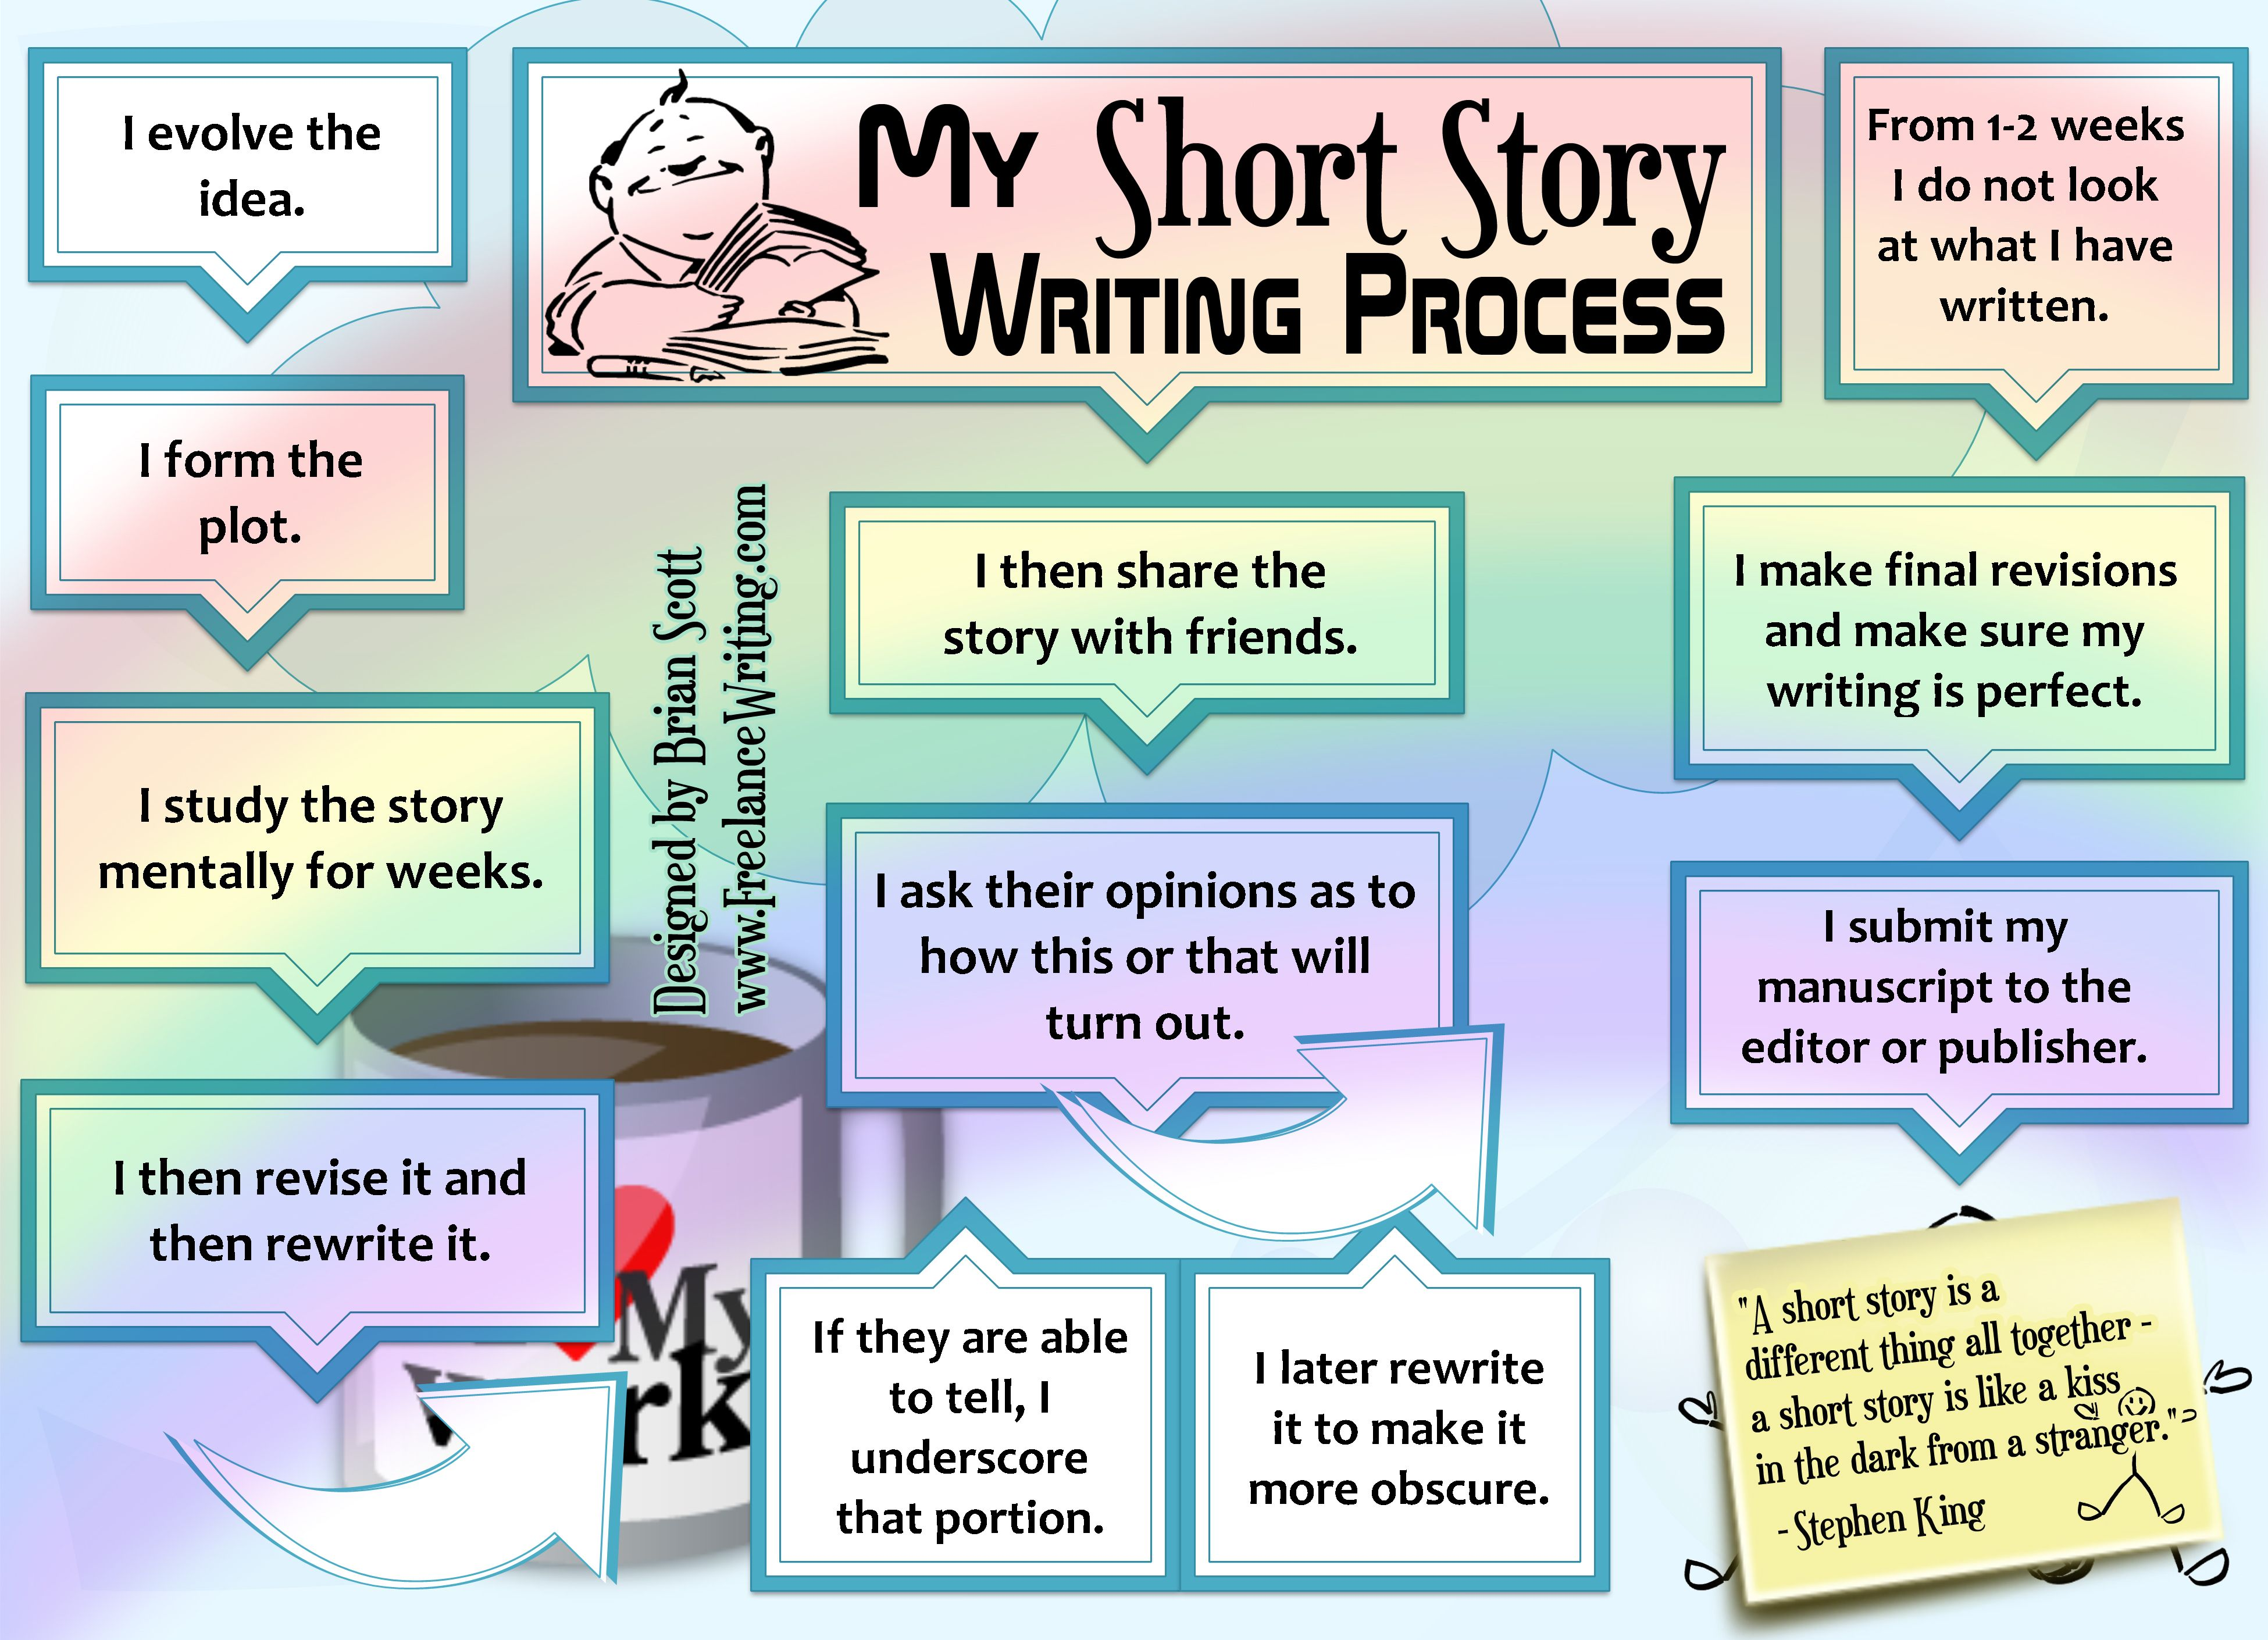 list of short story topics to write about